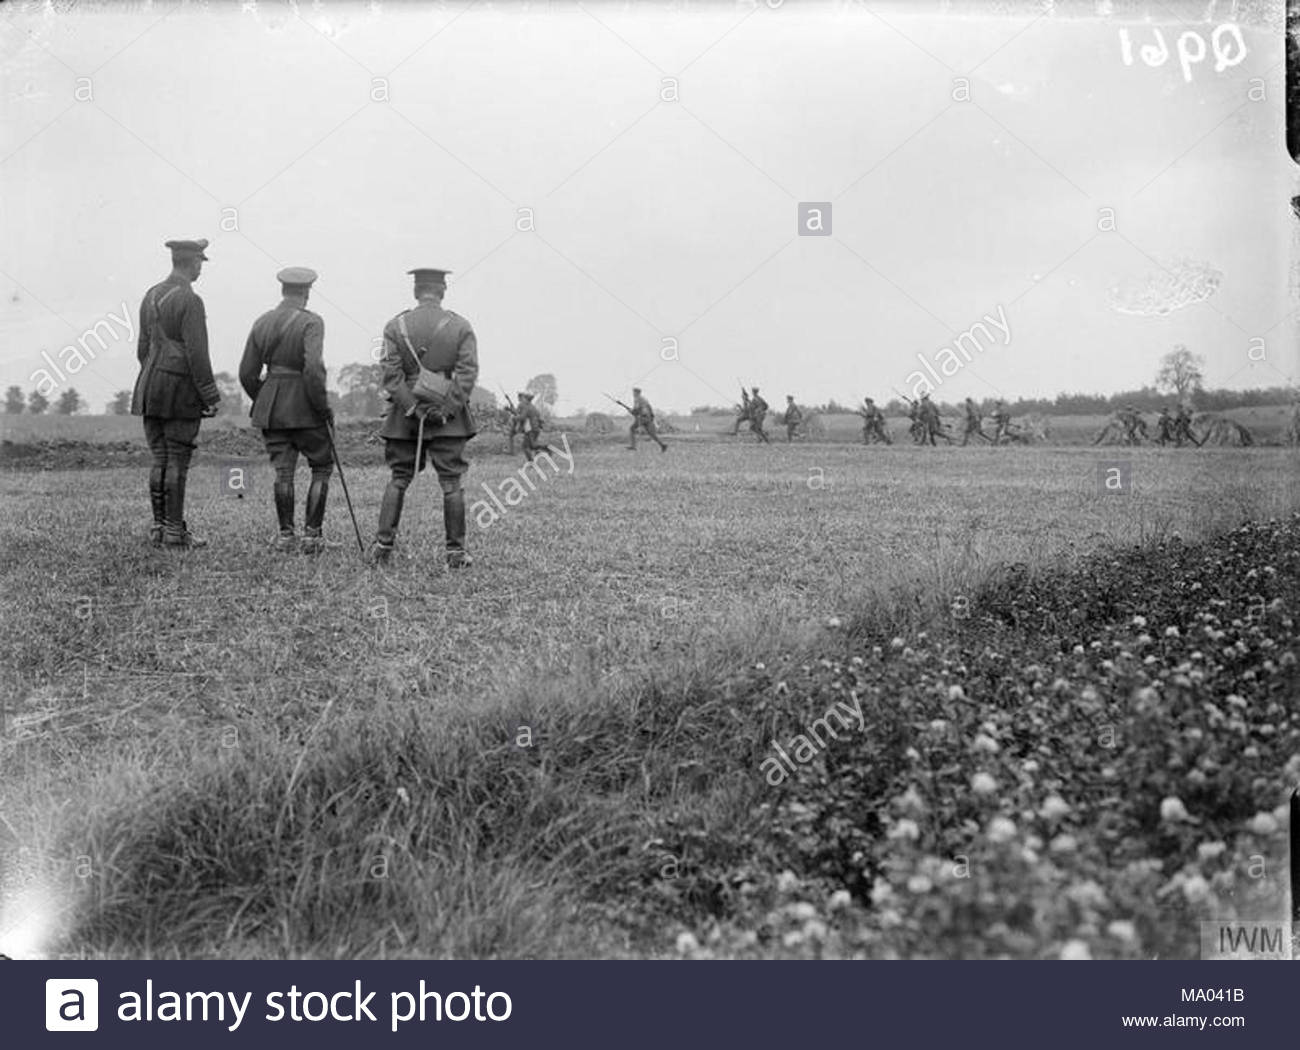 The Battle of the Somme, July-november 1916 King George V watching a practice attack at the Third Army Trench Mortar School at Ligny-Saint-Flochel, where the King was received by Major-General Arthur Holland, Commander Royal Artillery for Third Army, and Major Hudson, who was in charge, 9th August 1916. - Stock Image